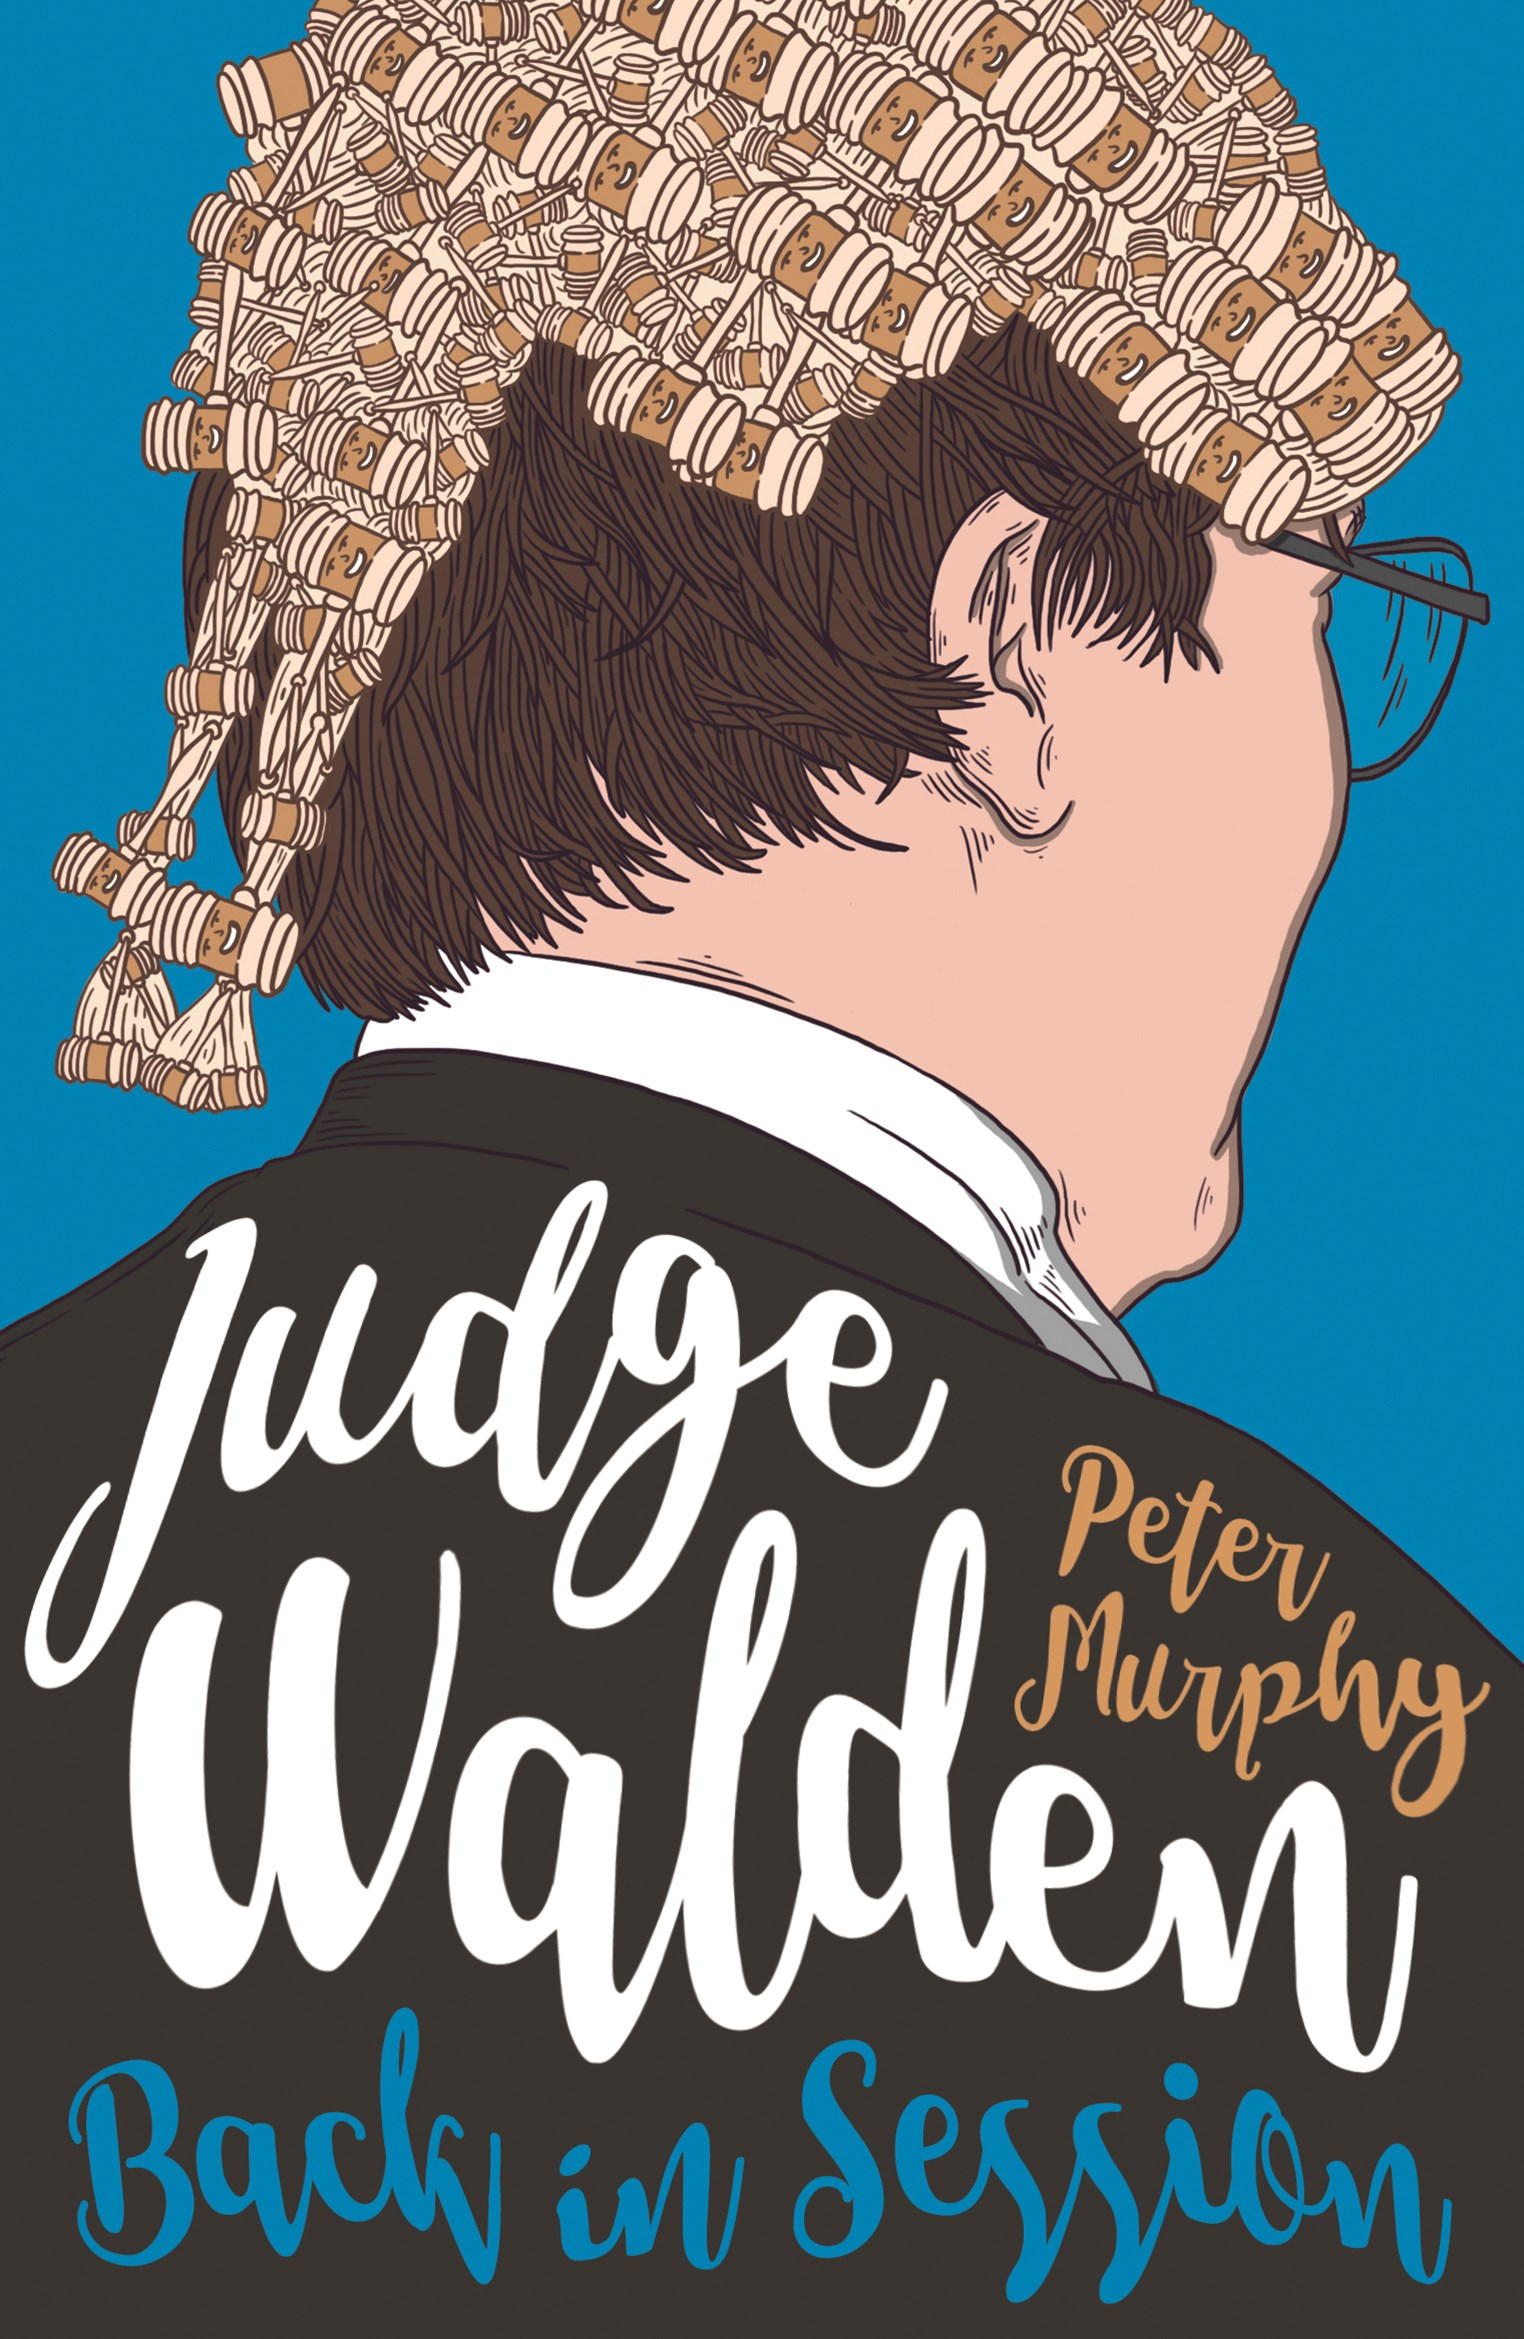 Judge Walden